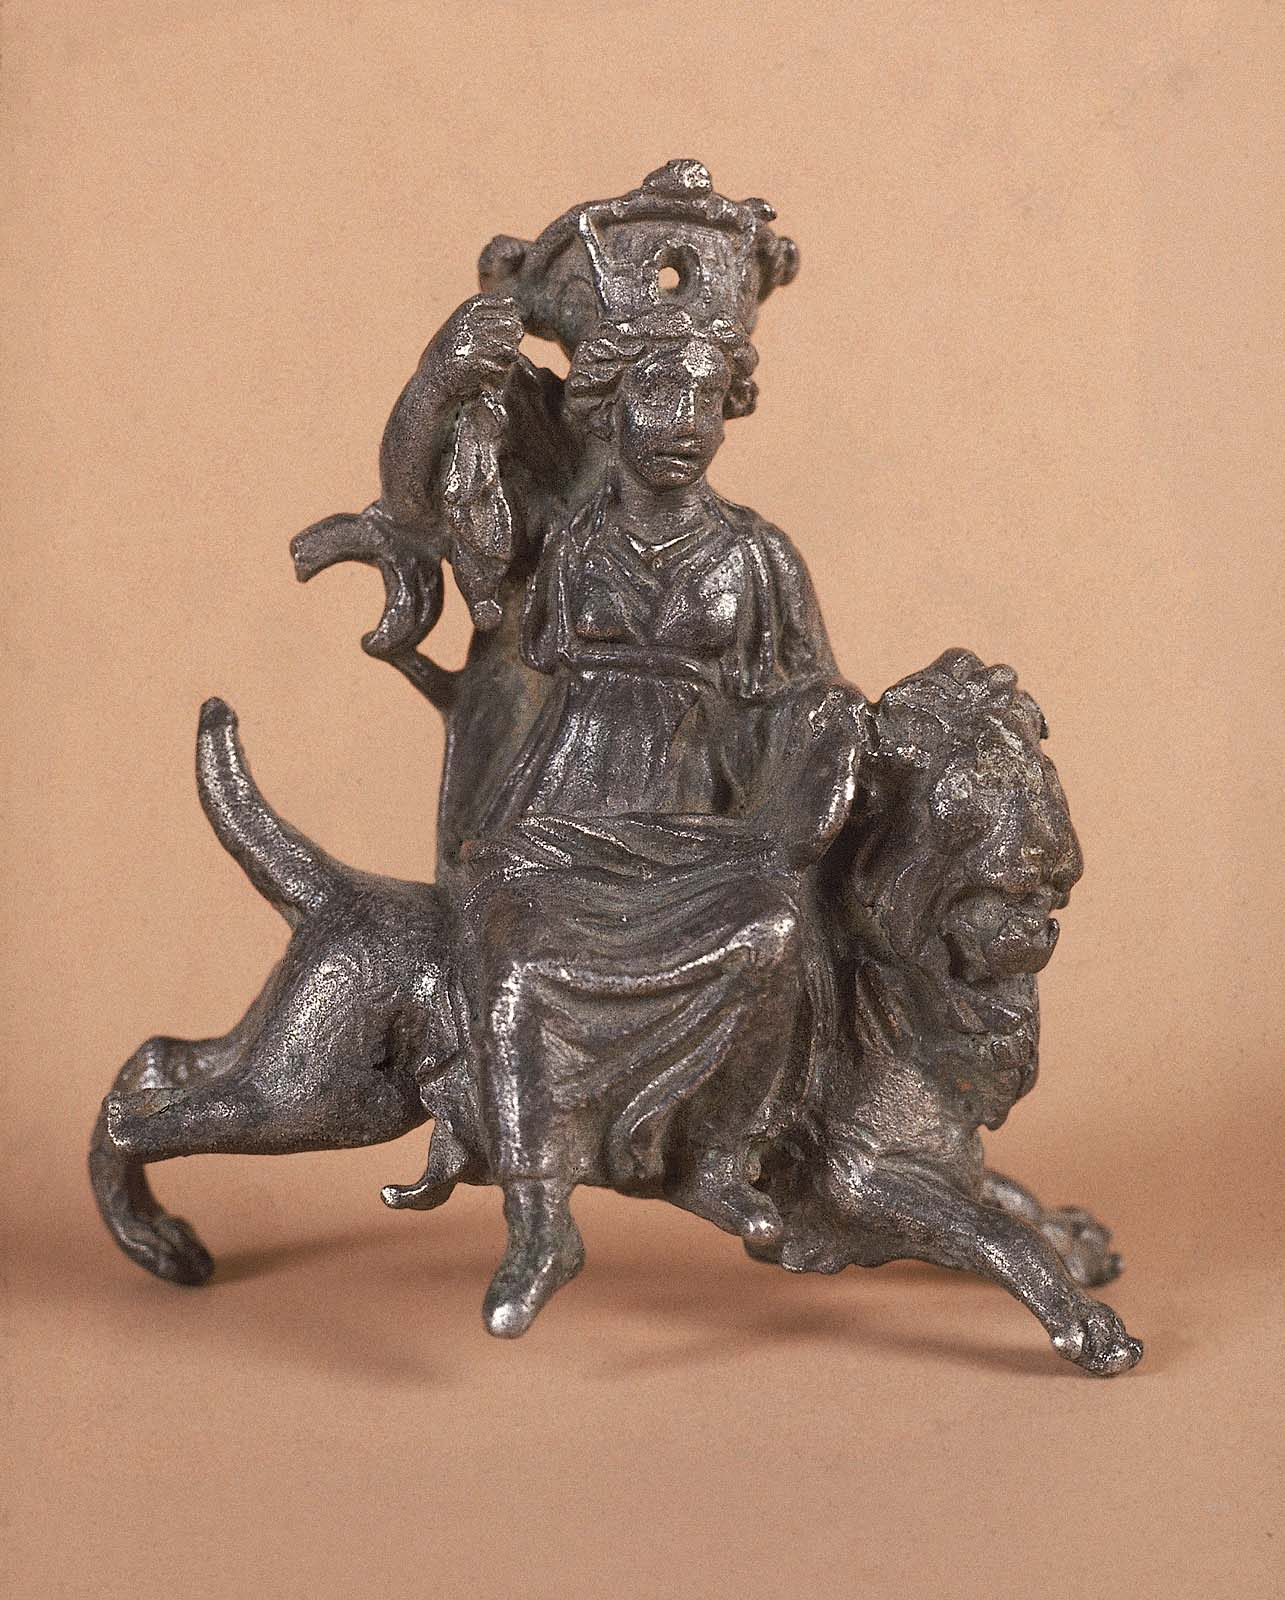 Statuette Of Cybelemagna Mater Wearing A Mural Crown And Riding A